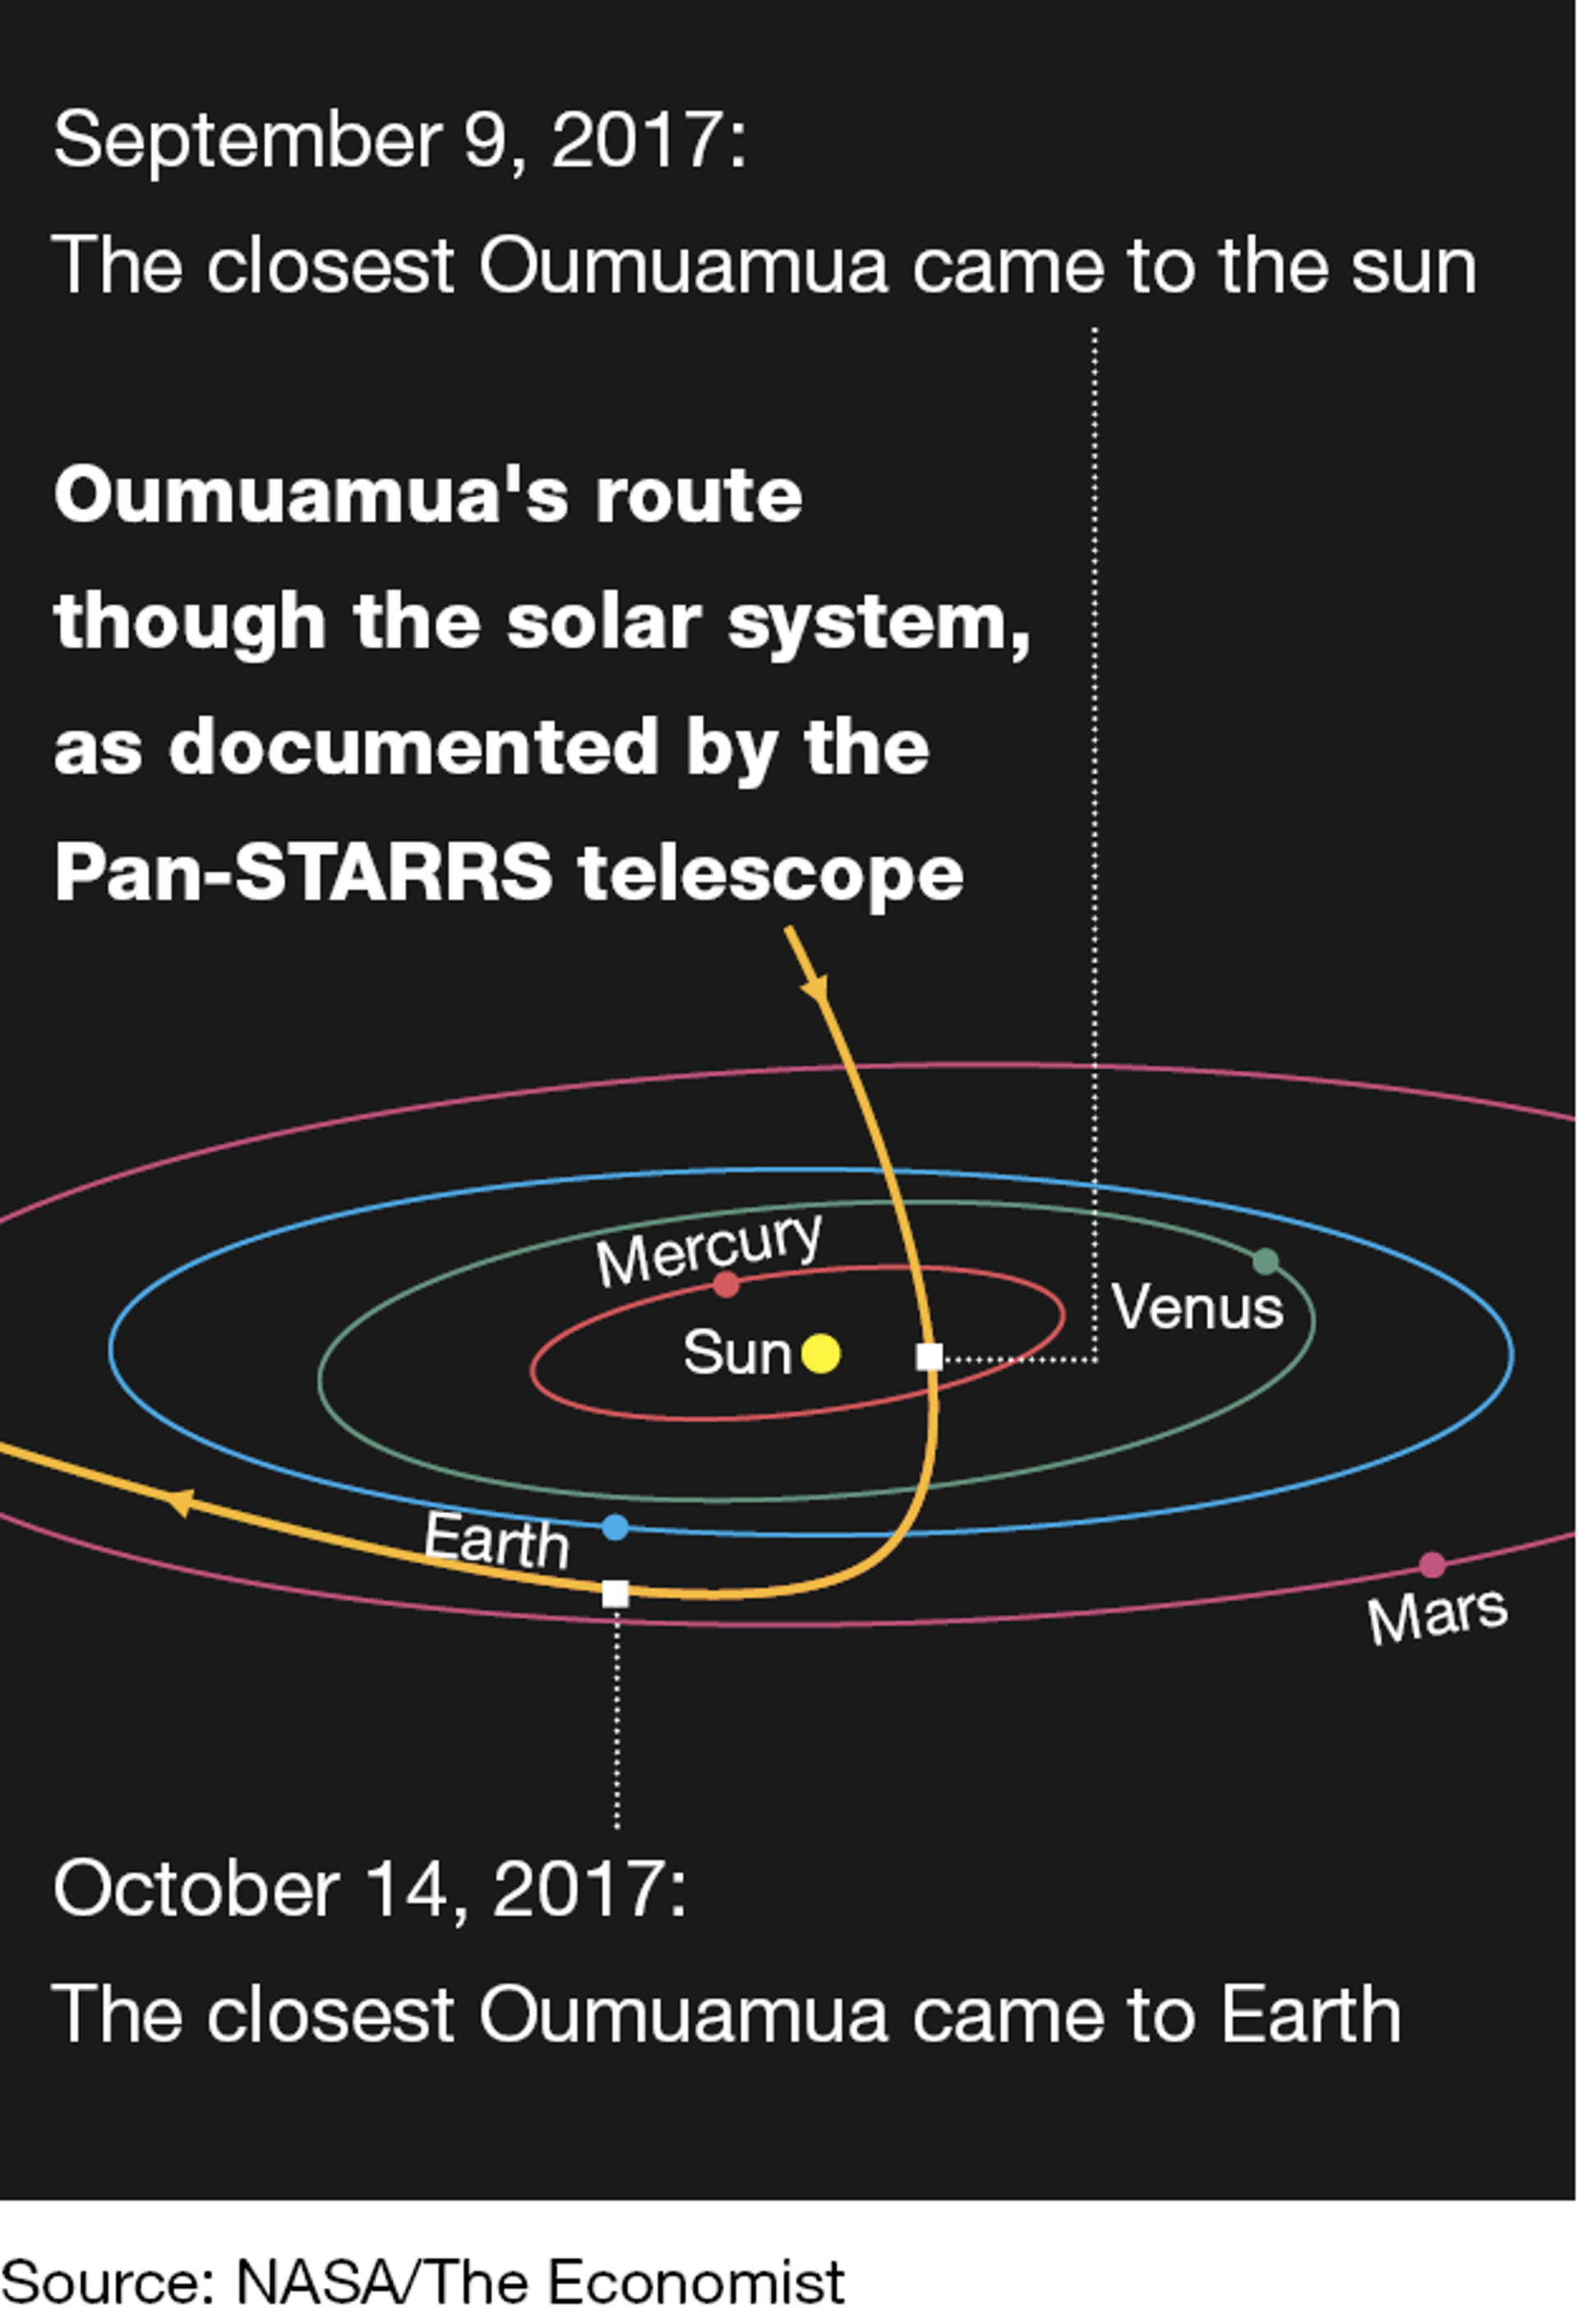 Oumuamua's route through the solar system.